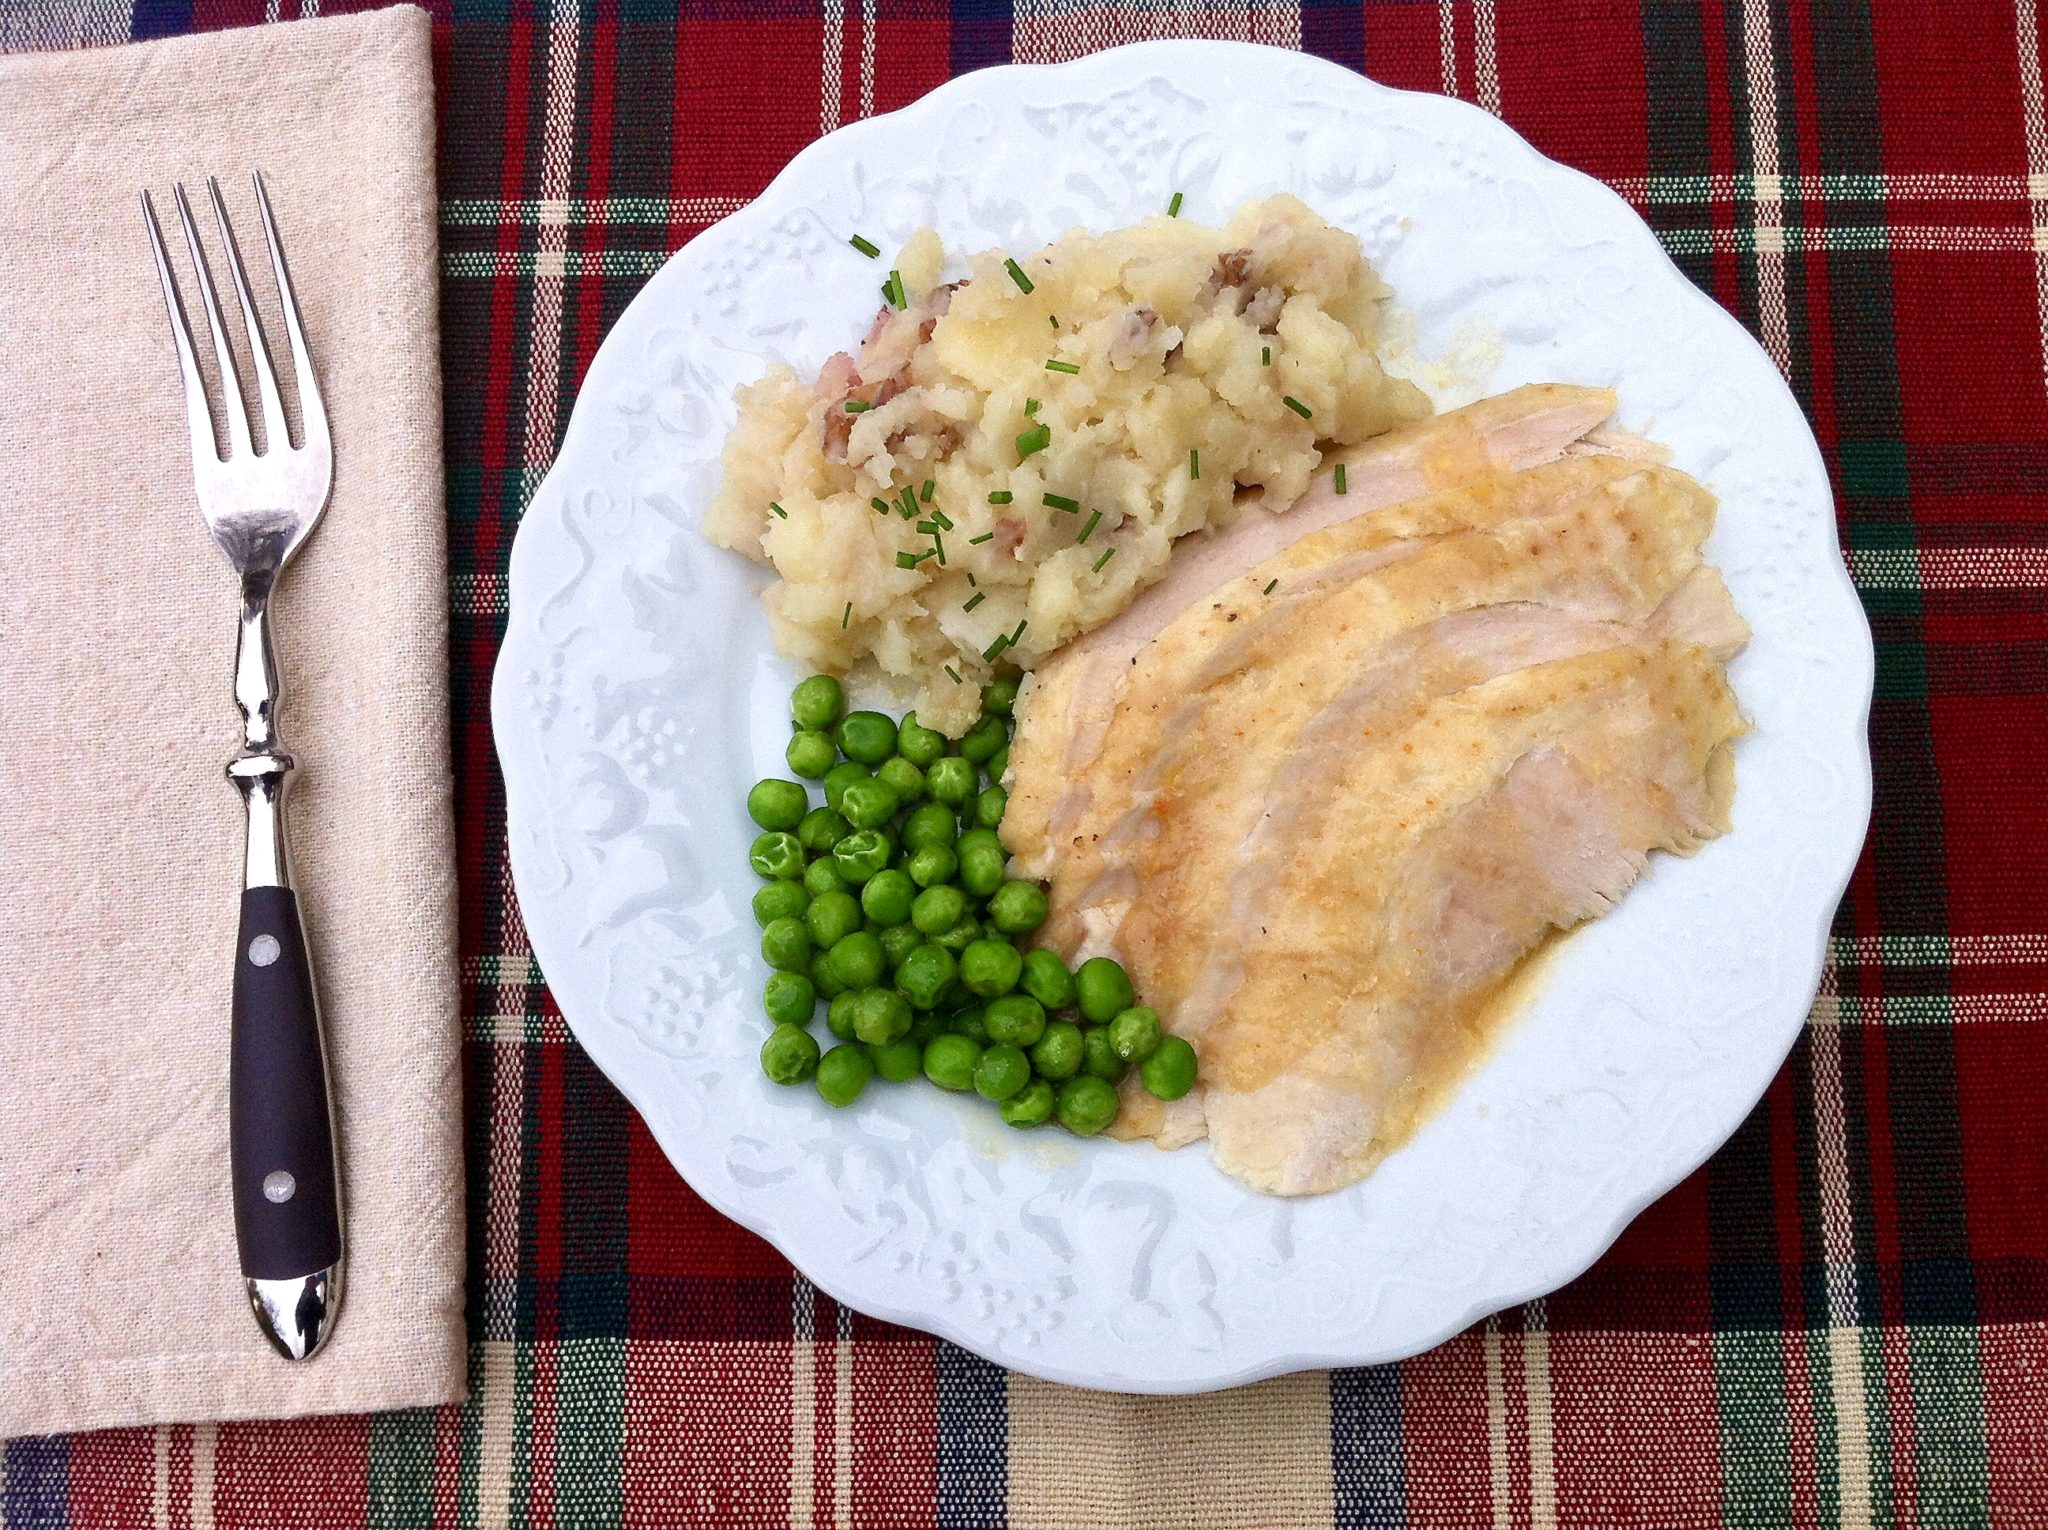 This hands-off, foolproof way to achieve tender, juicy white meat can be prepped the night ahead if desired and the gravy is spectacular.